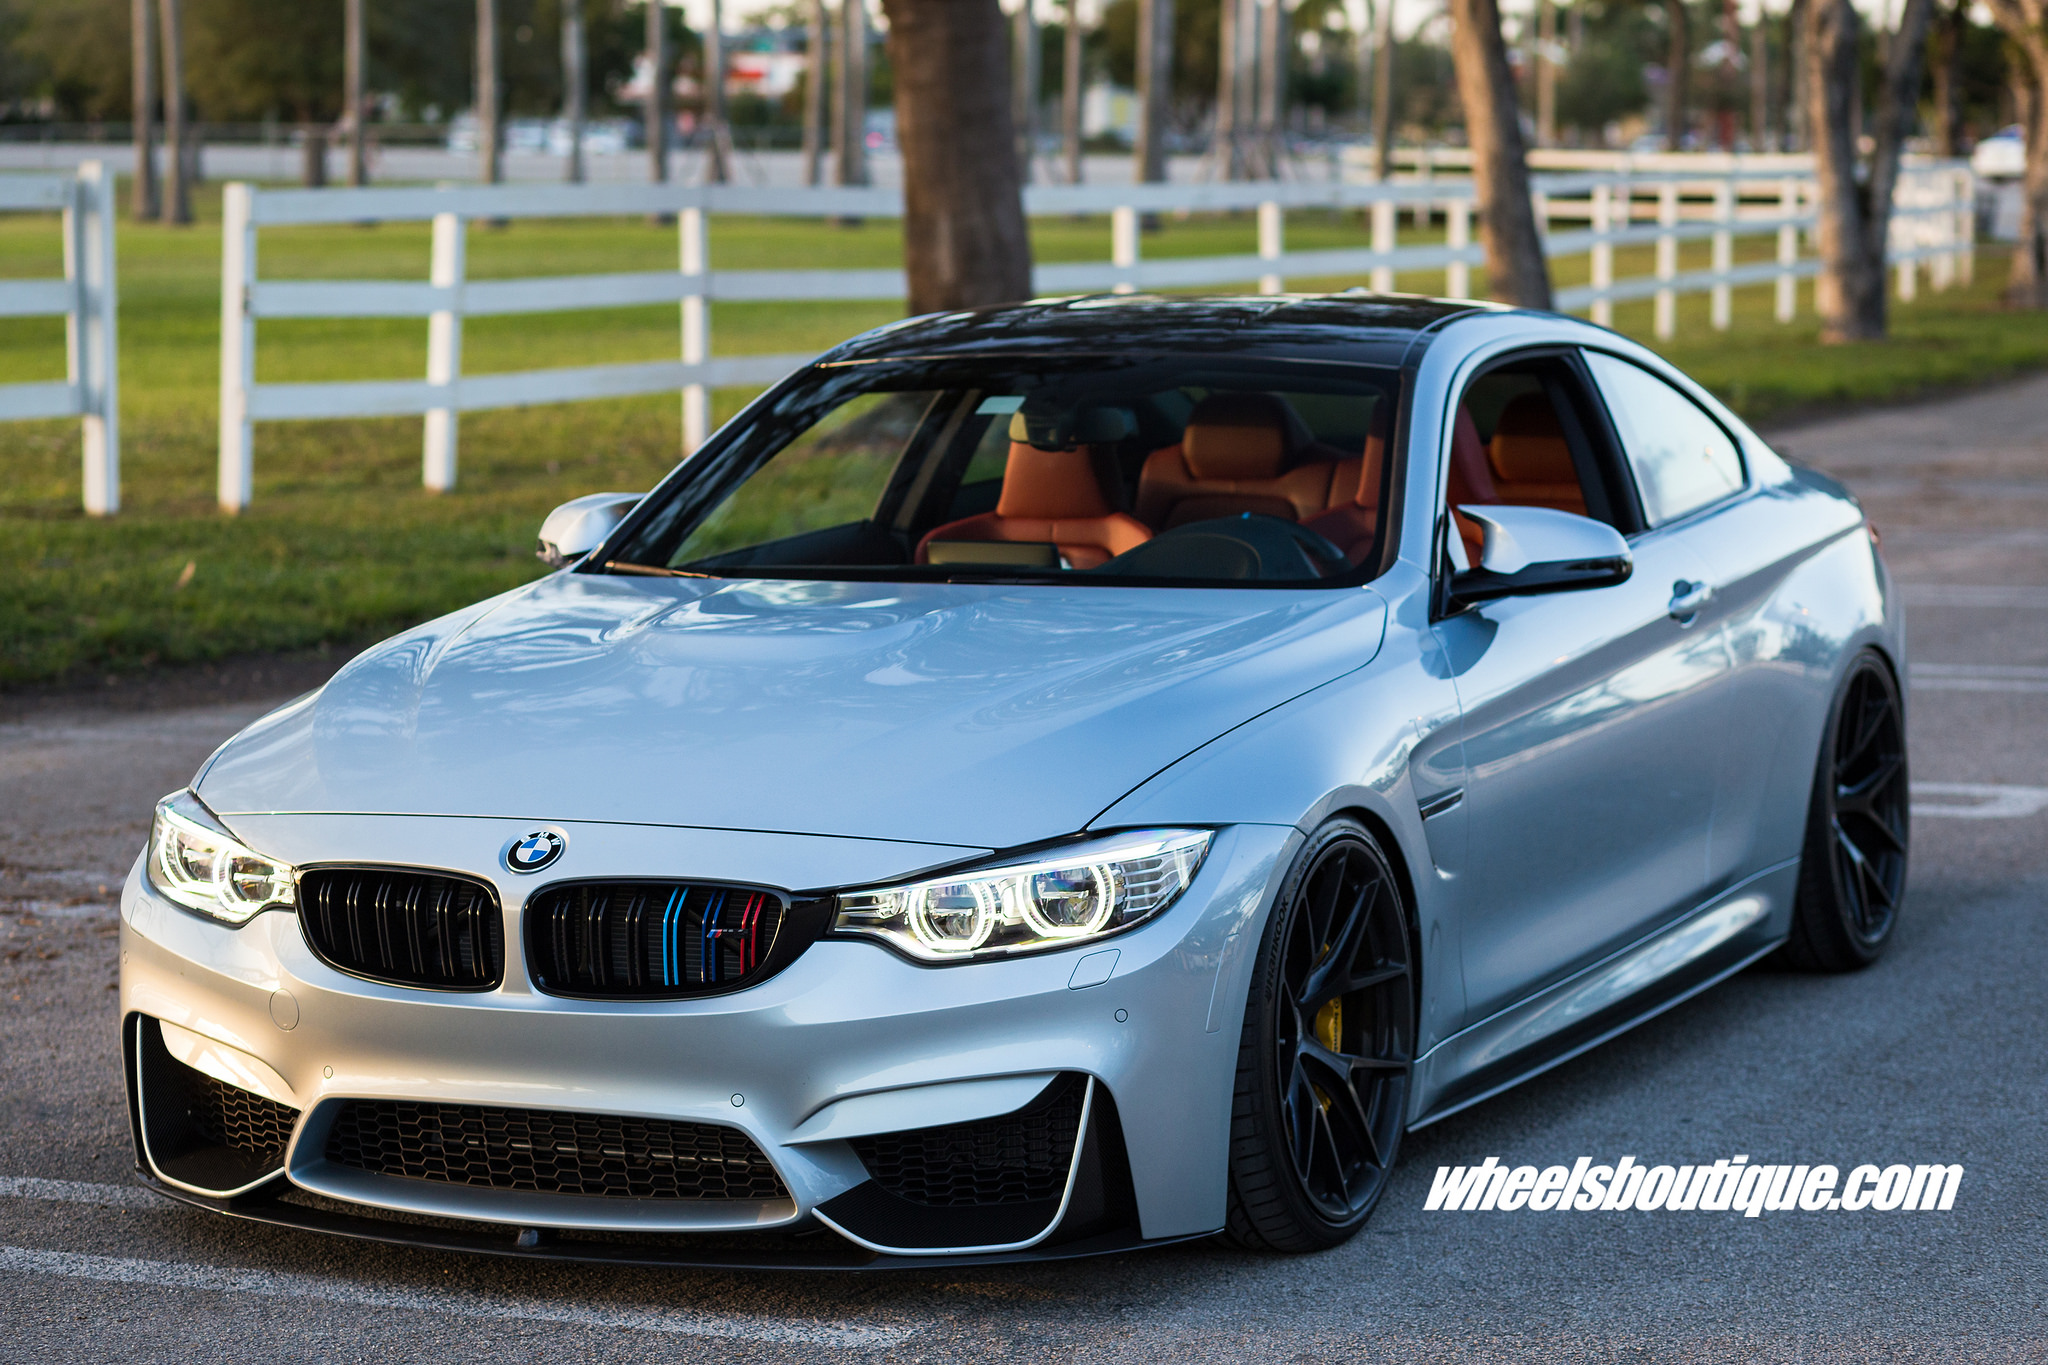 f82 bmw m4 on hre wheels installation by wheels boutique bmw car tuning. Black Bedroom Furniture Sets. Home Design Ideas